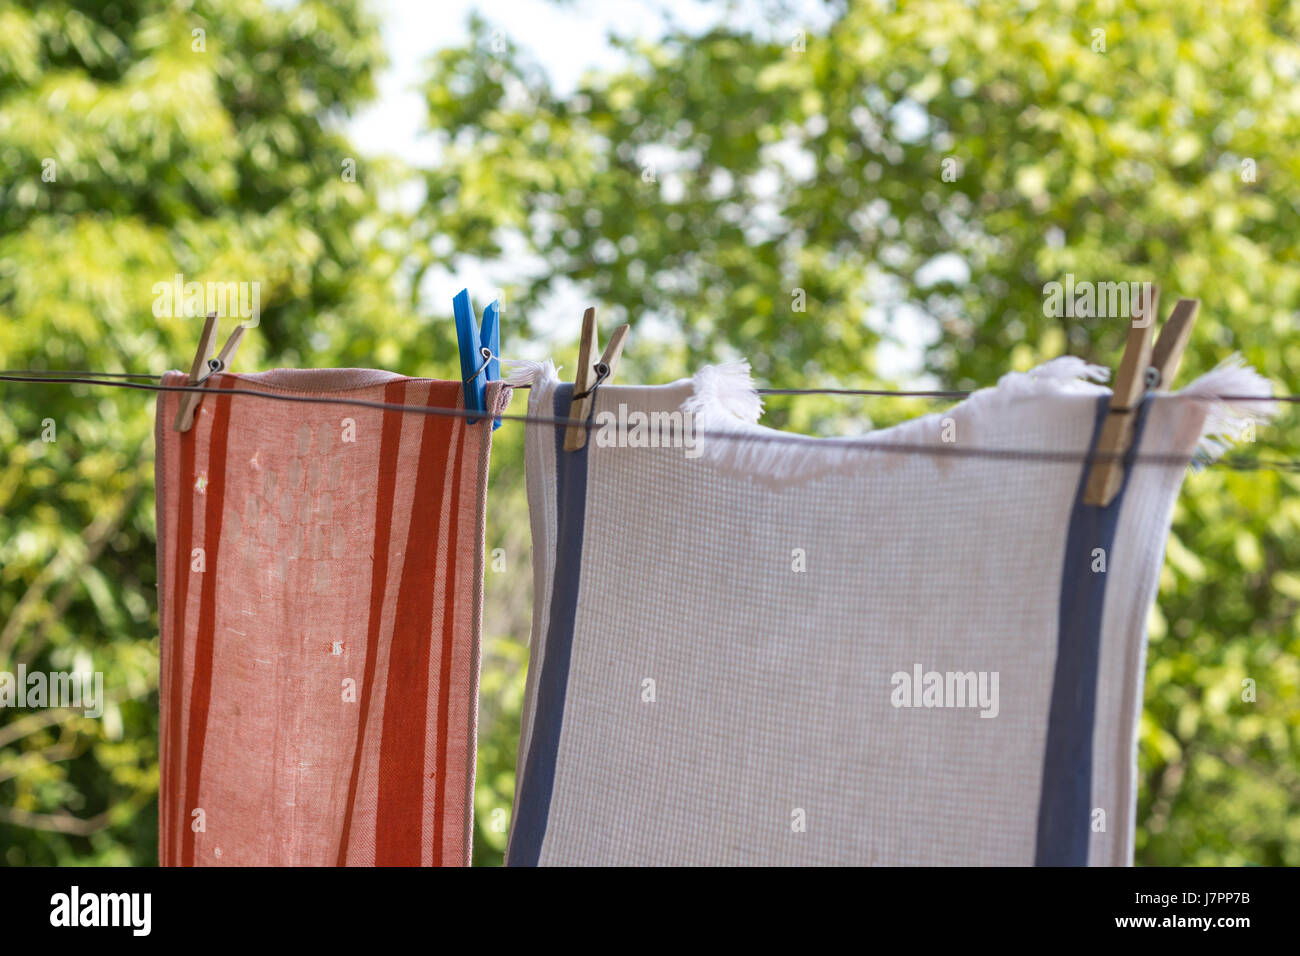 Two old towels hanging up with pegs outside to dry. - Stock Image